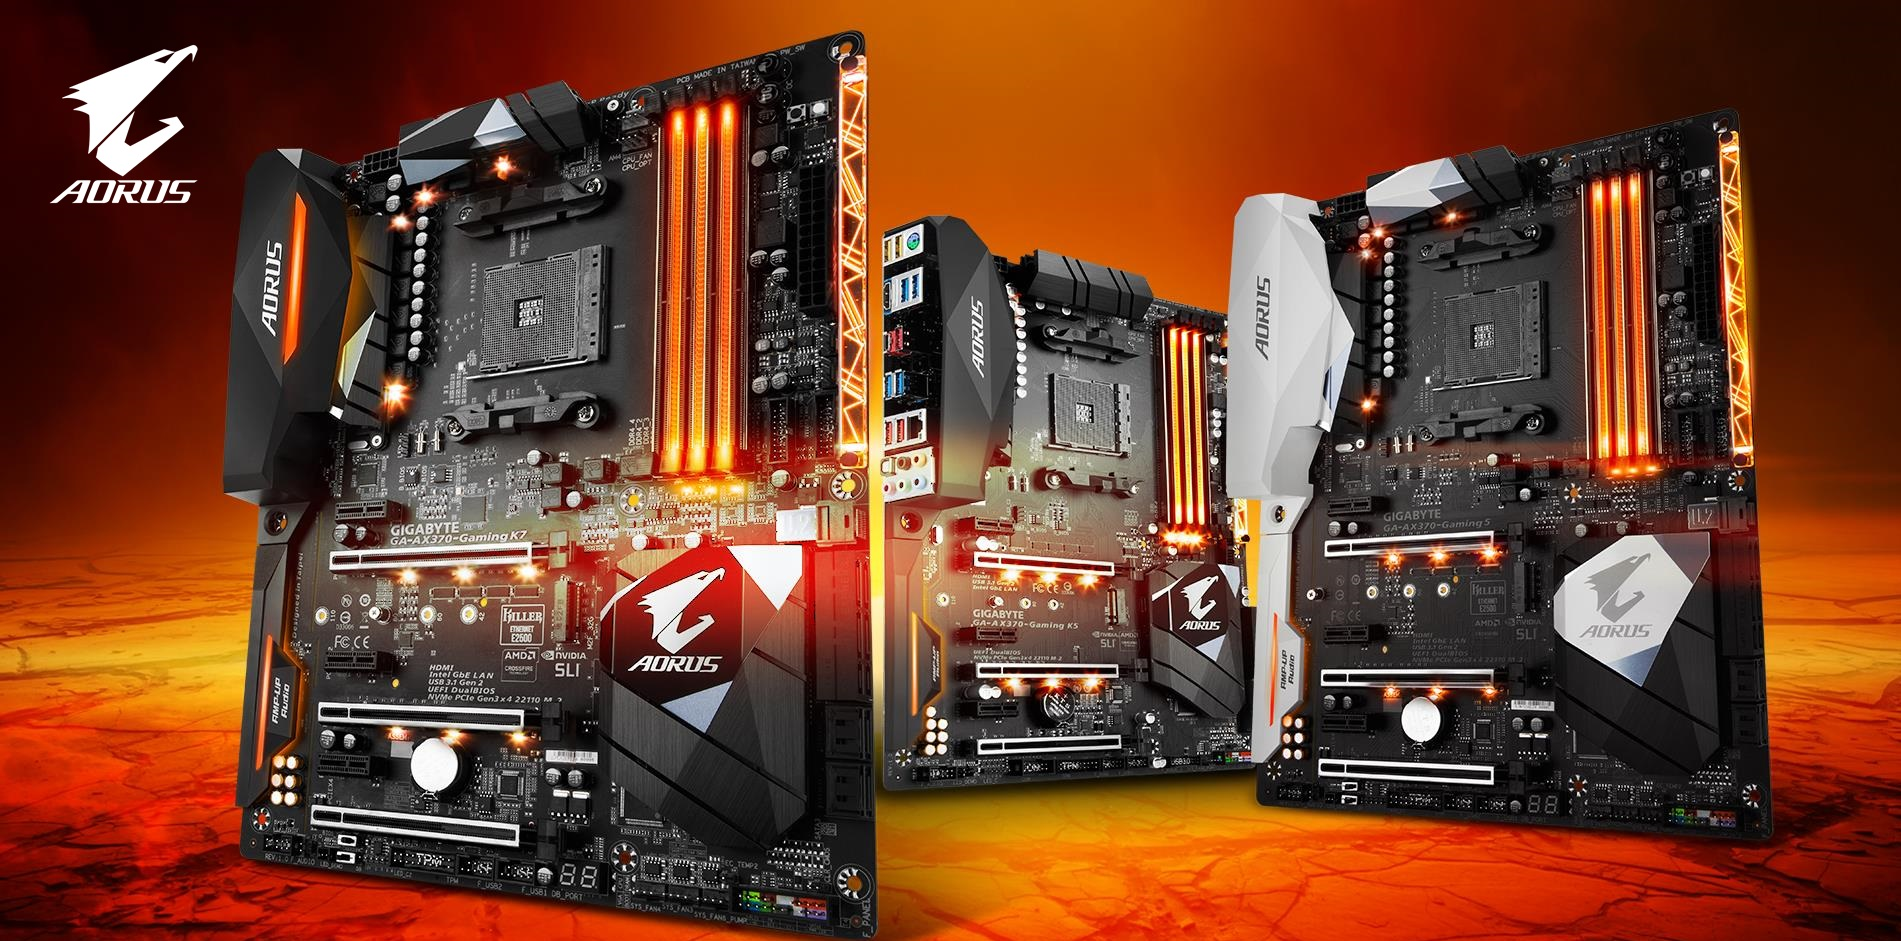 Aorus Motherboard And Core I9-9900K Processor Offered At Bundle For $1,600